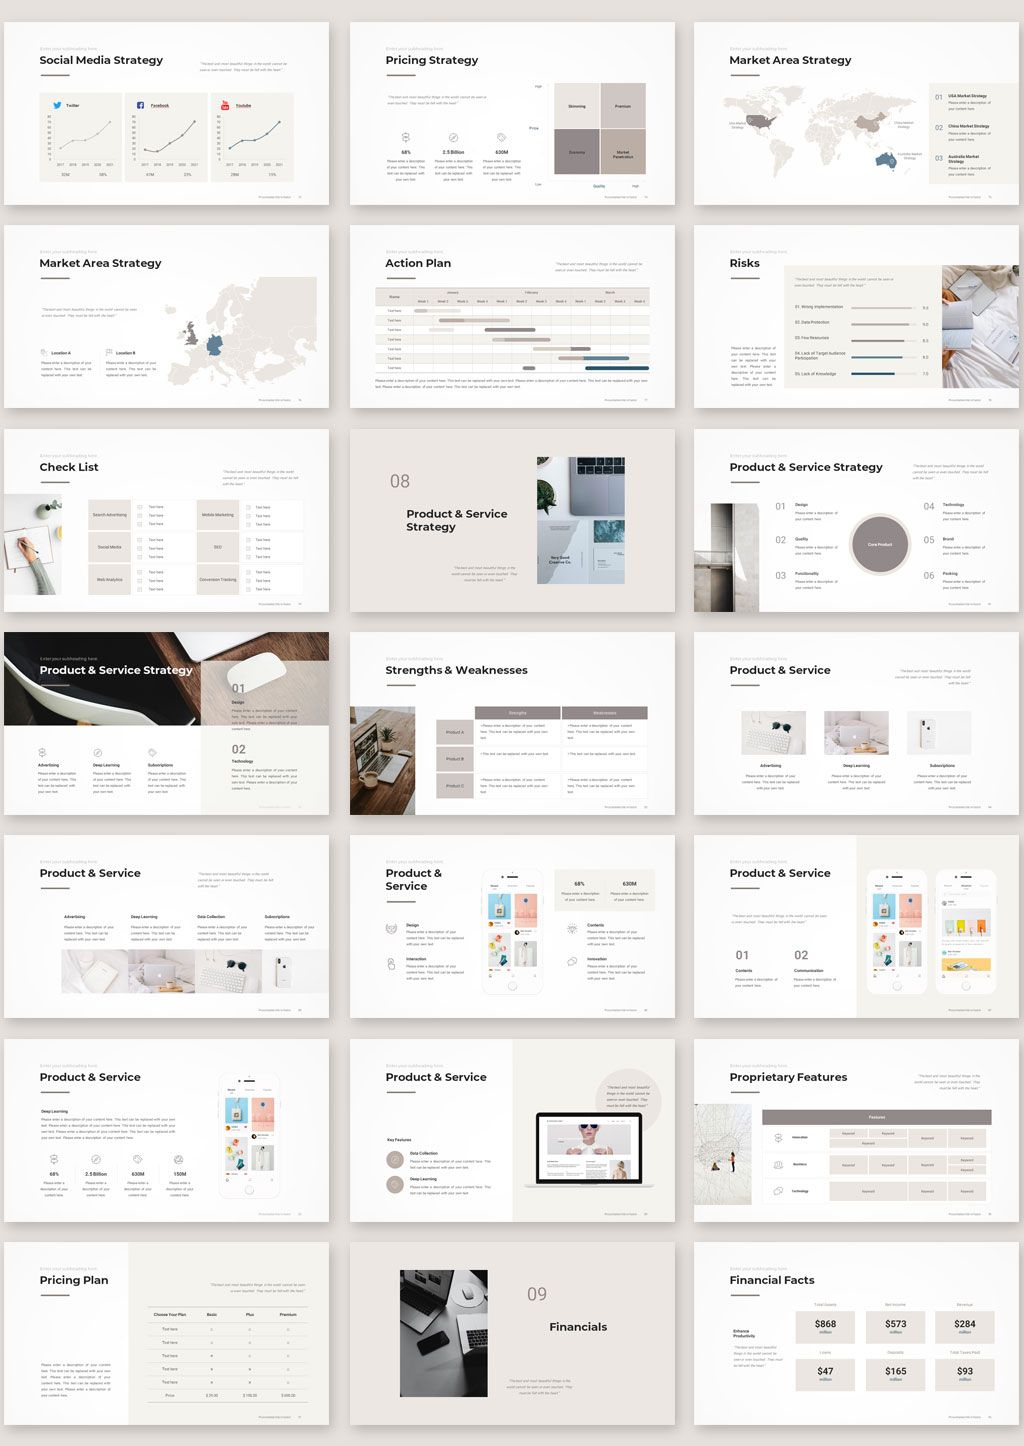 Marketing Plan Template 2020 Download PowerPoint